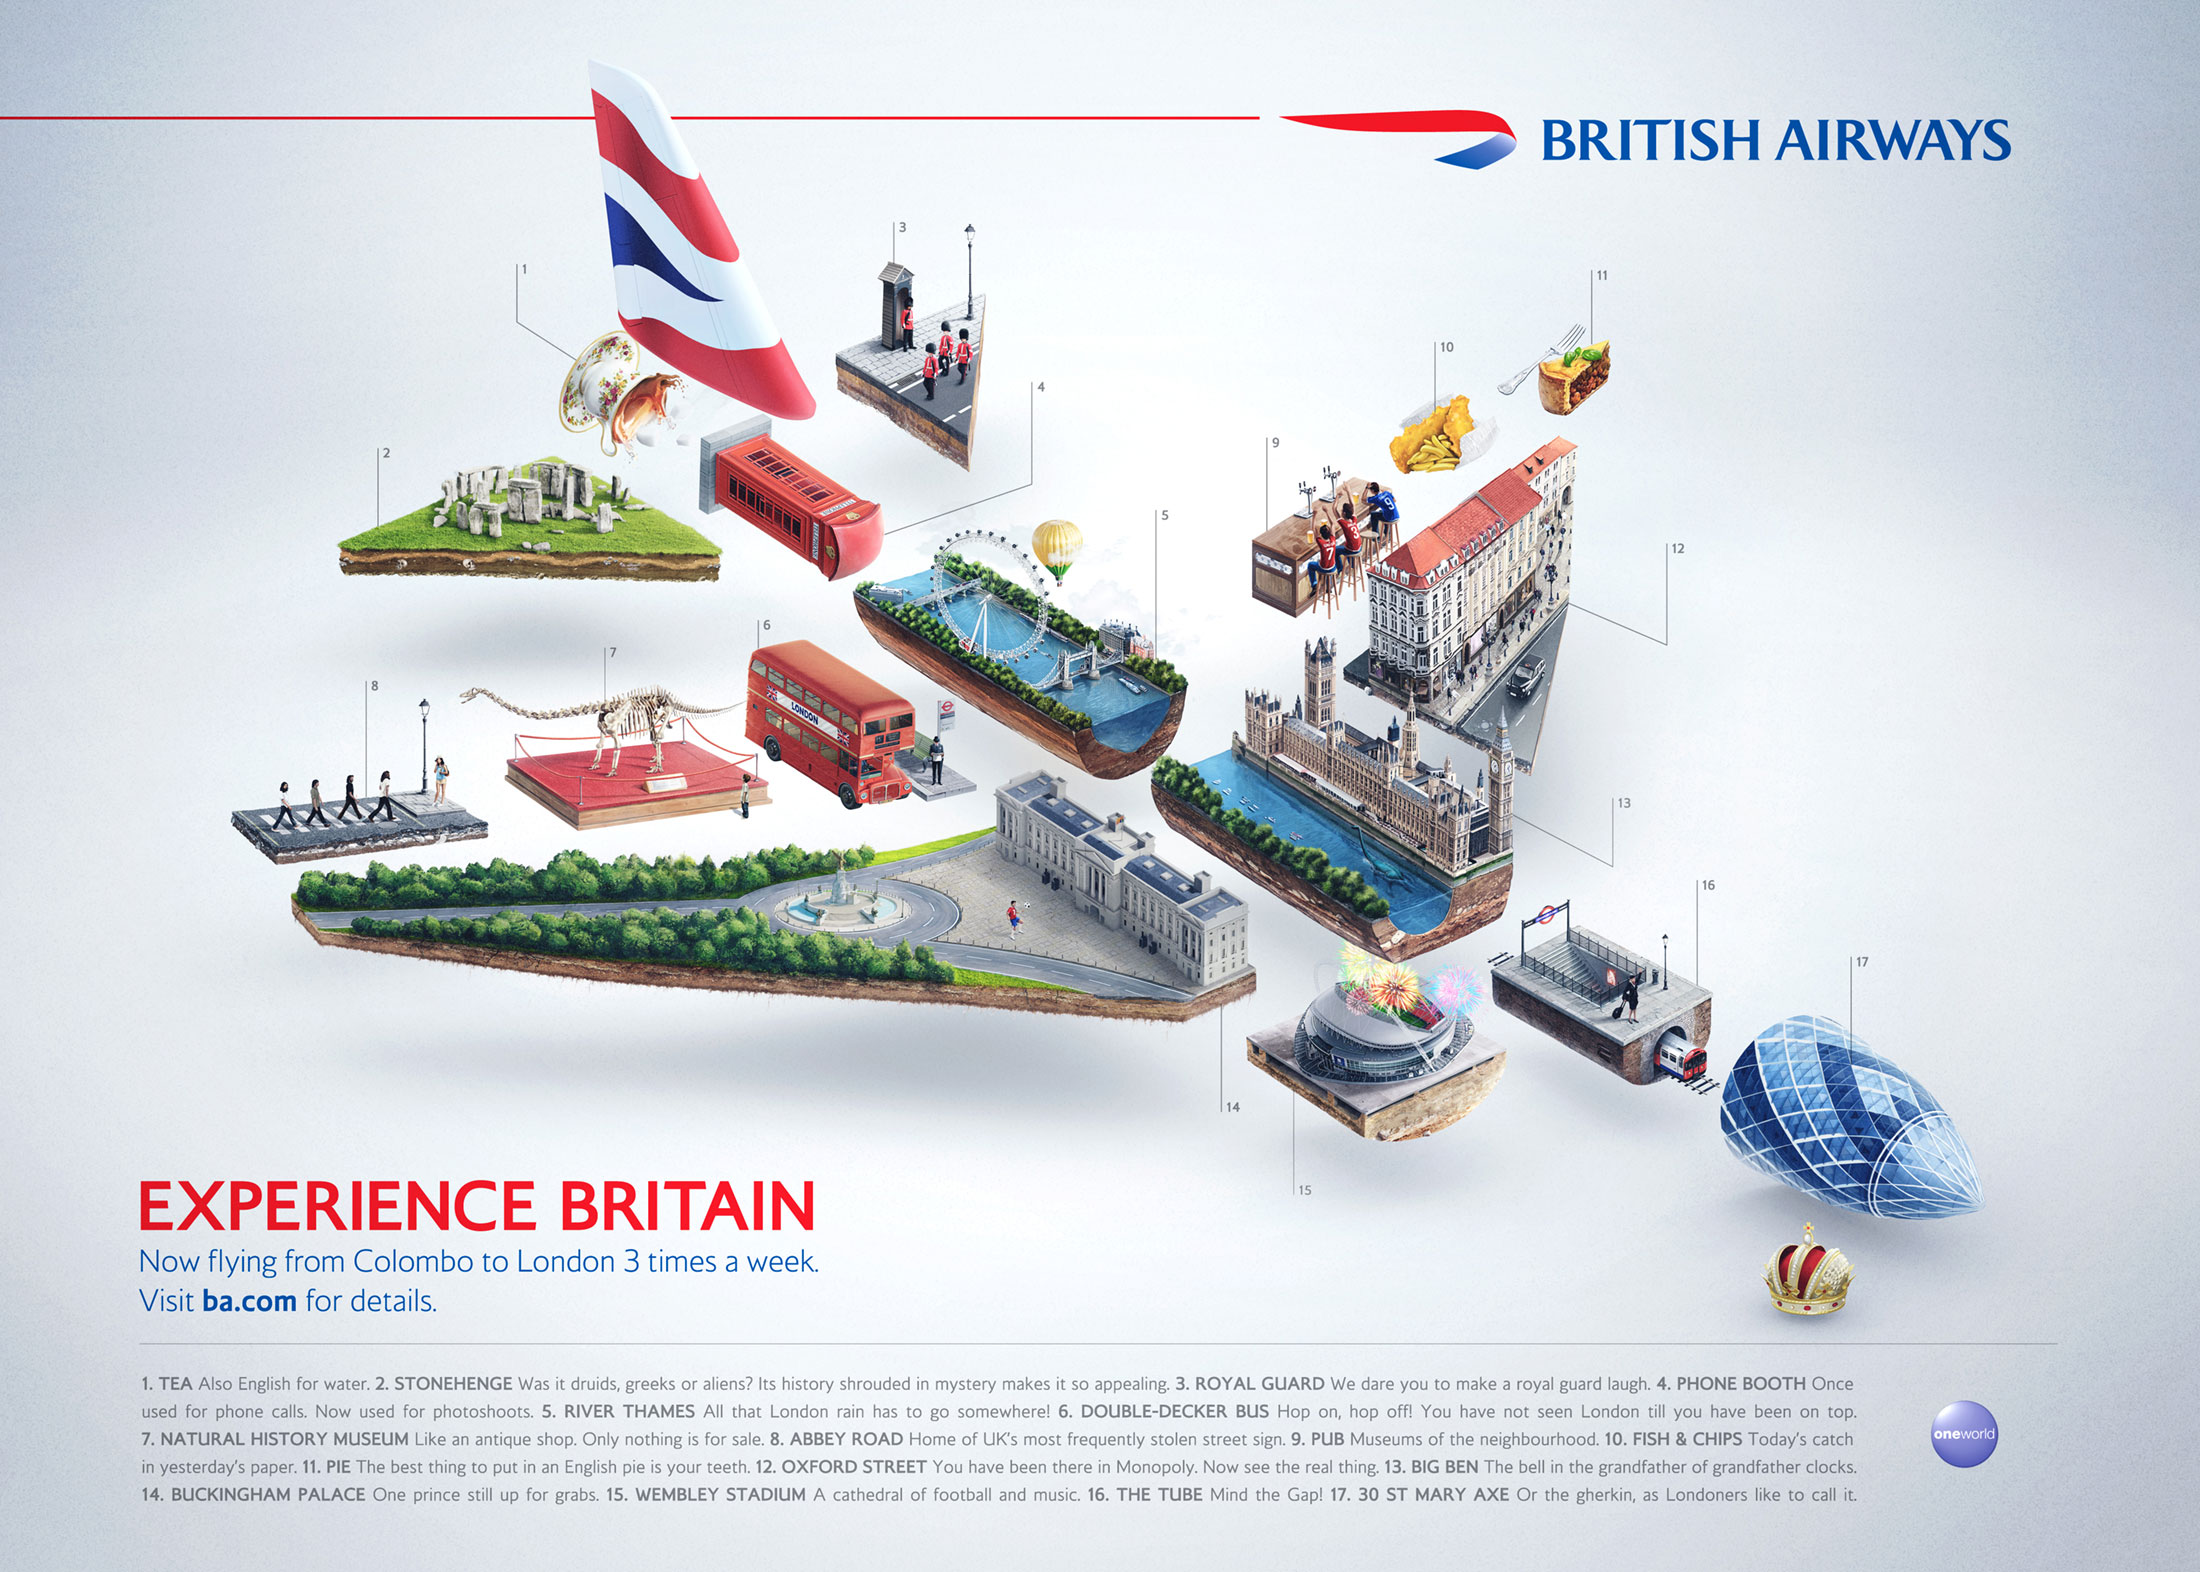 AT_British-Airways-Experience-Britain_IMG_01